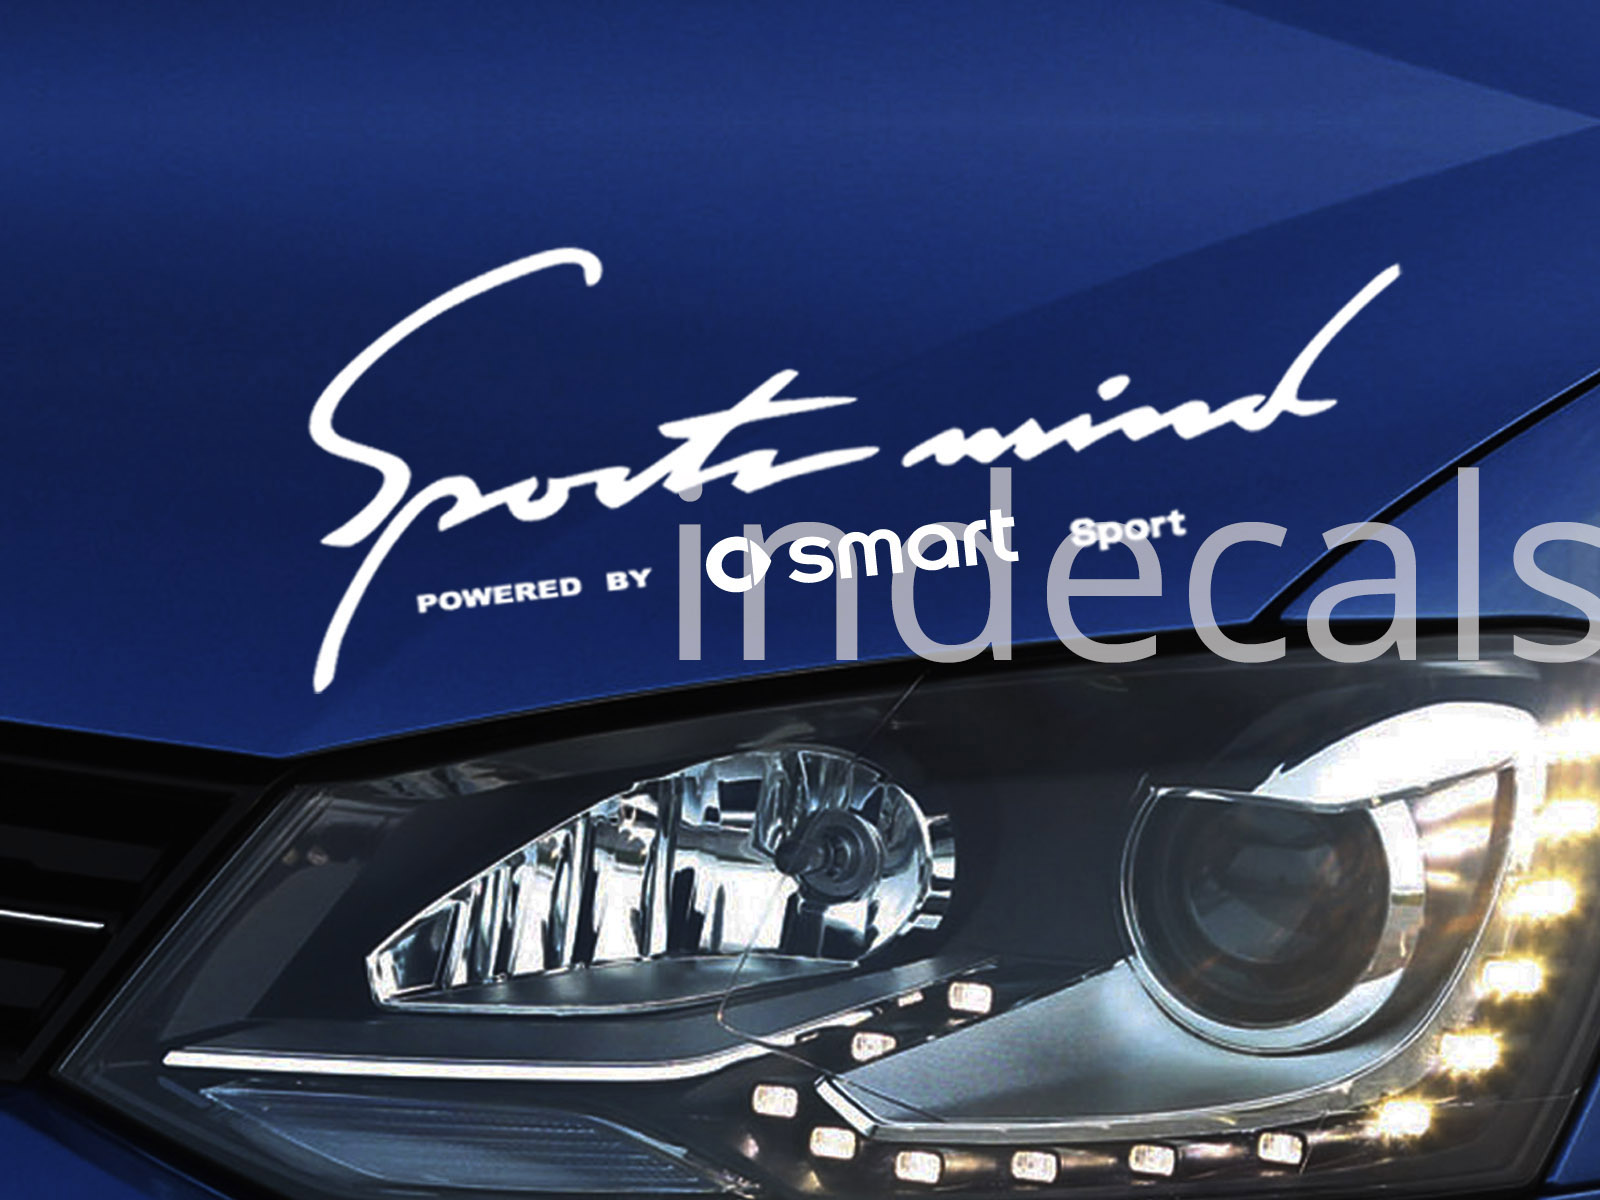 1 x Smart Sports Mind Sticker - White